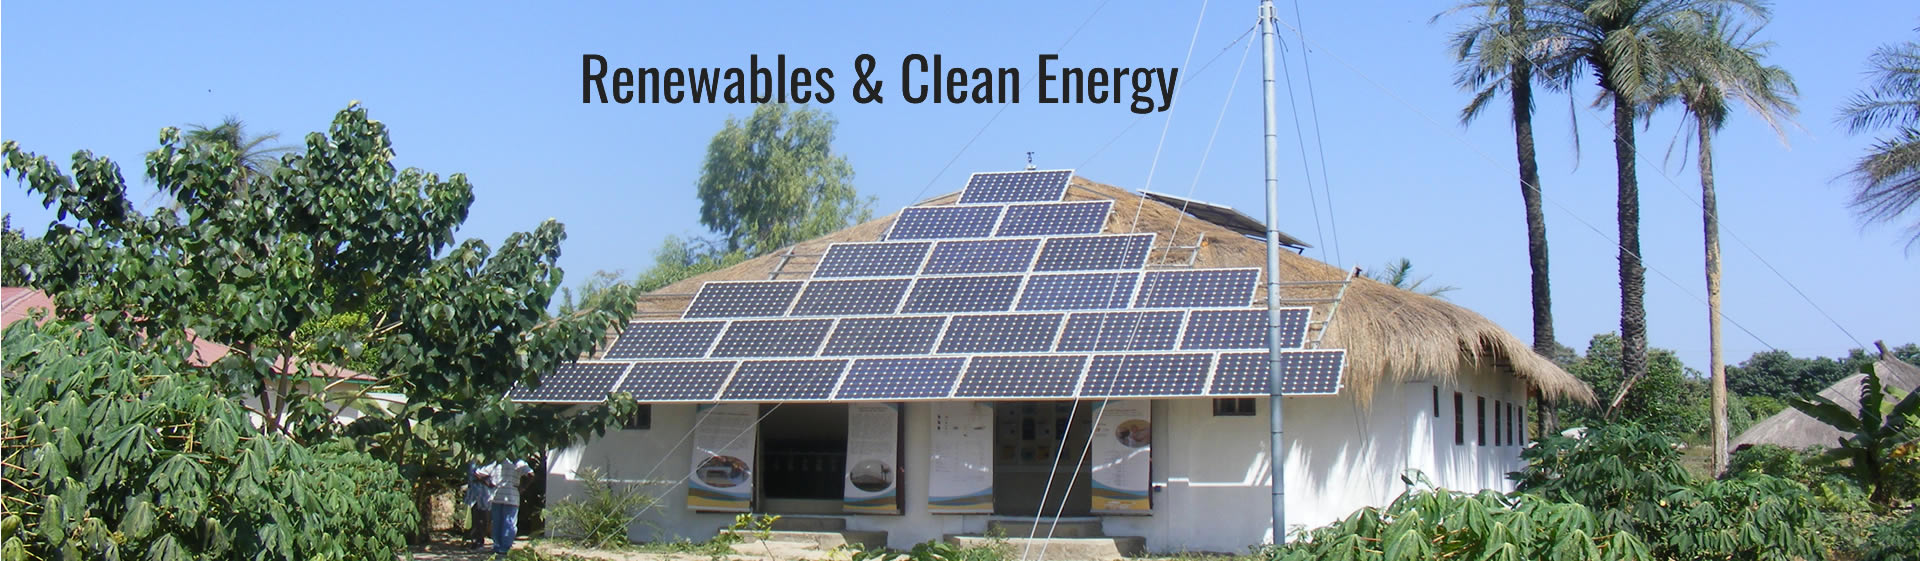 renewable energy consulting